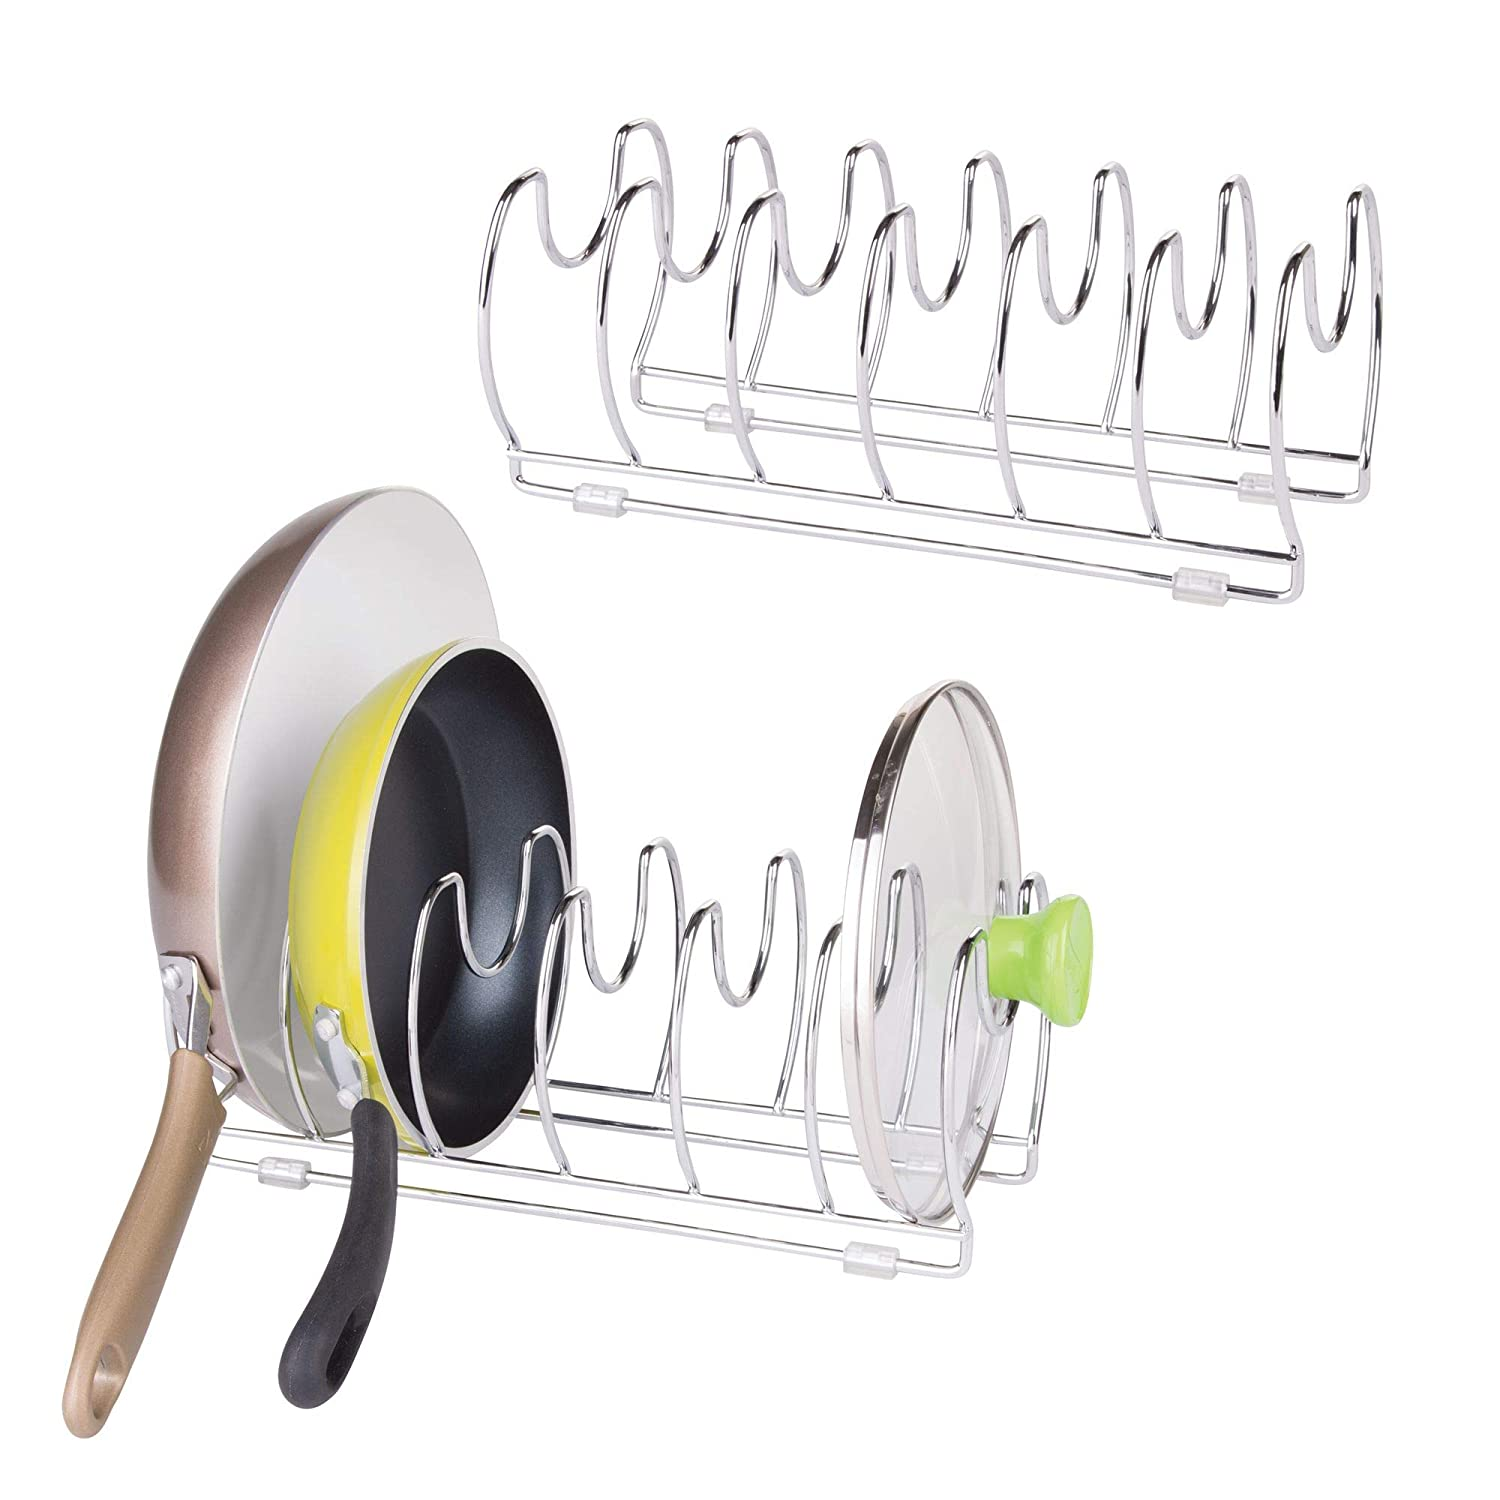 mDesign Pot and Pan Organizer Rack for Kitchen Cabinet, Pantry and Shelves - Organizer Holder with Six Slots for Skillets, Frying Pans, Lids - Vertical or Horizontal - Pack of 2, Steel Wire, Chrome MetroDecor